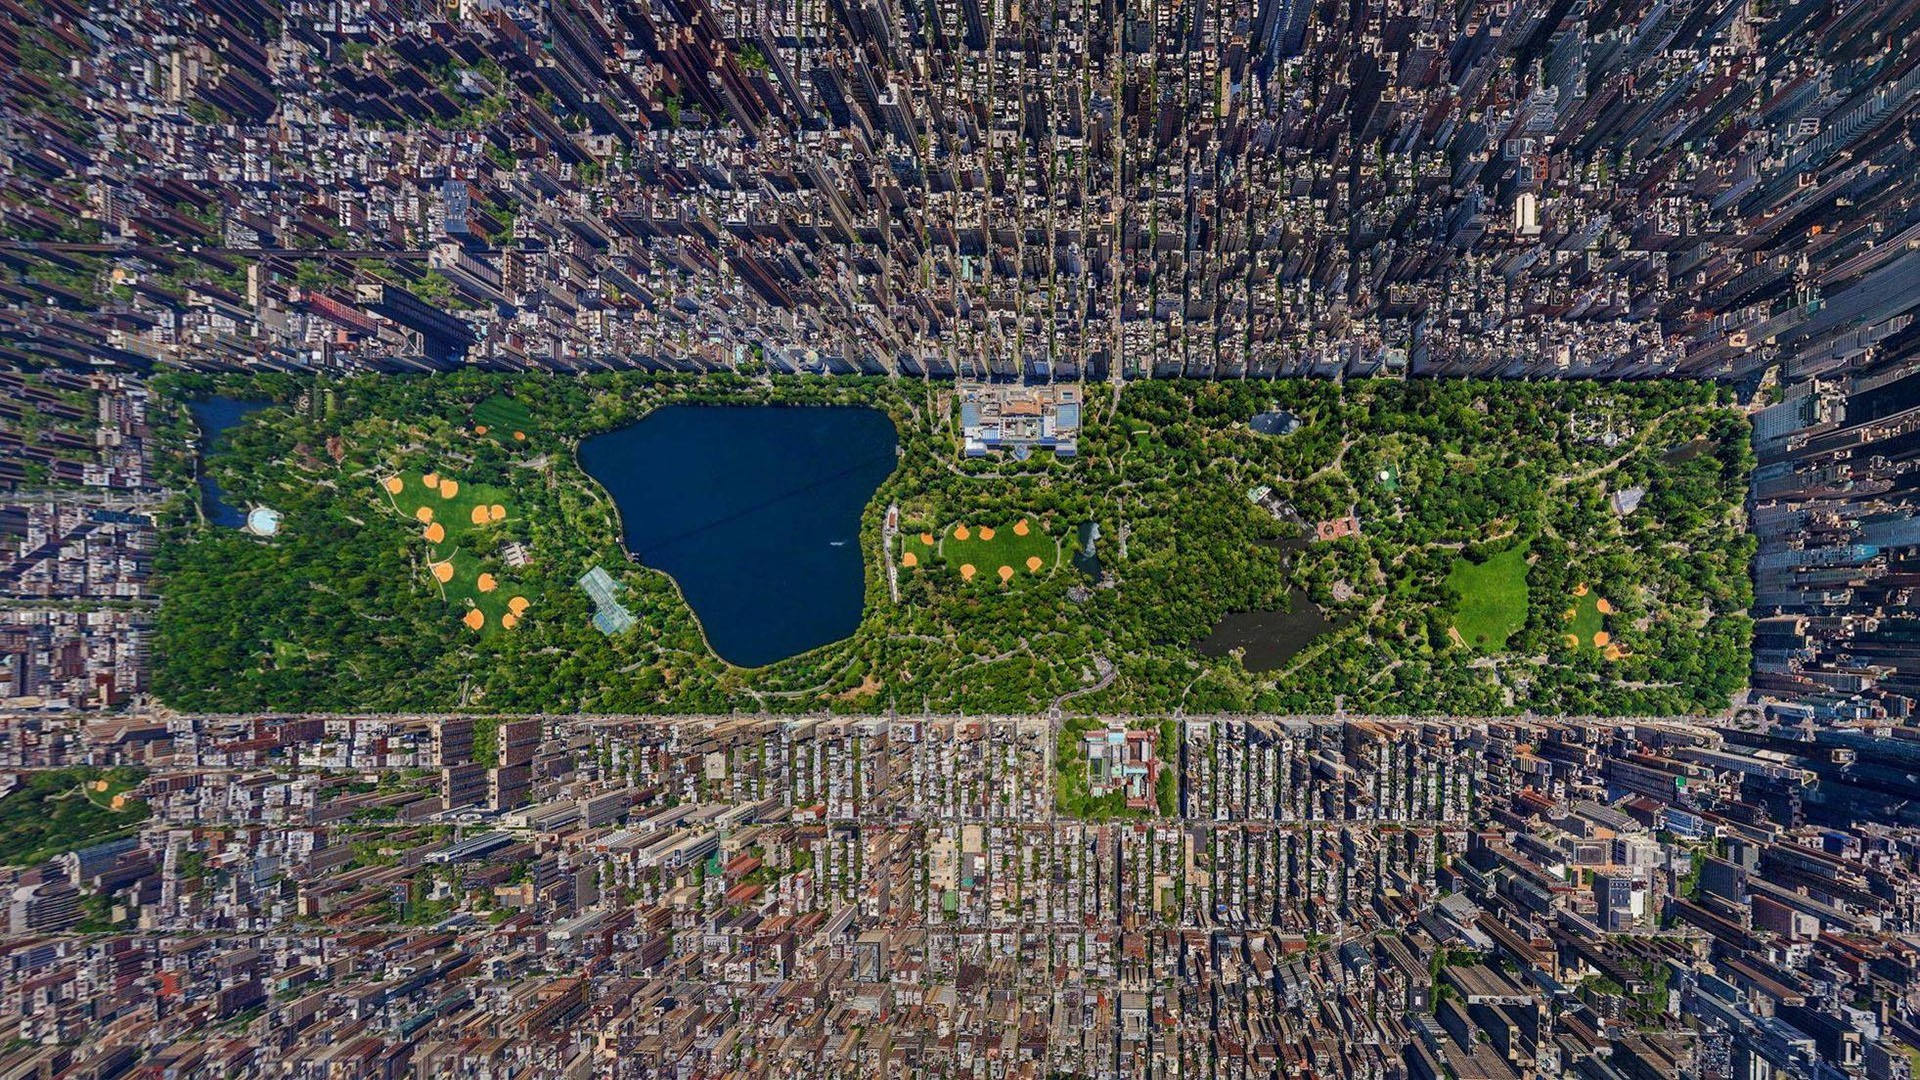 1920x1080 wallpaper.wiki-Central-Park-HD-Wallpaper-PIC-WPC007297